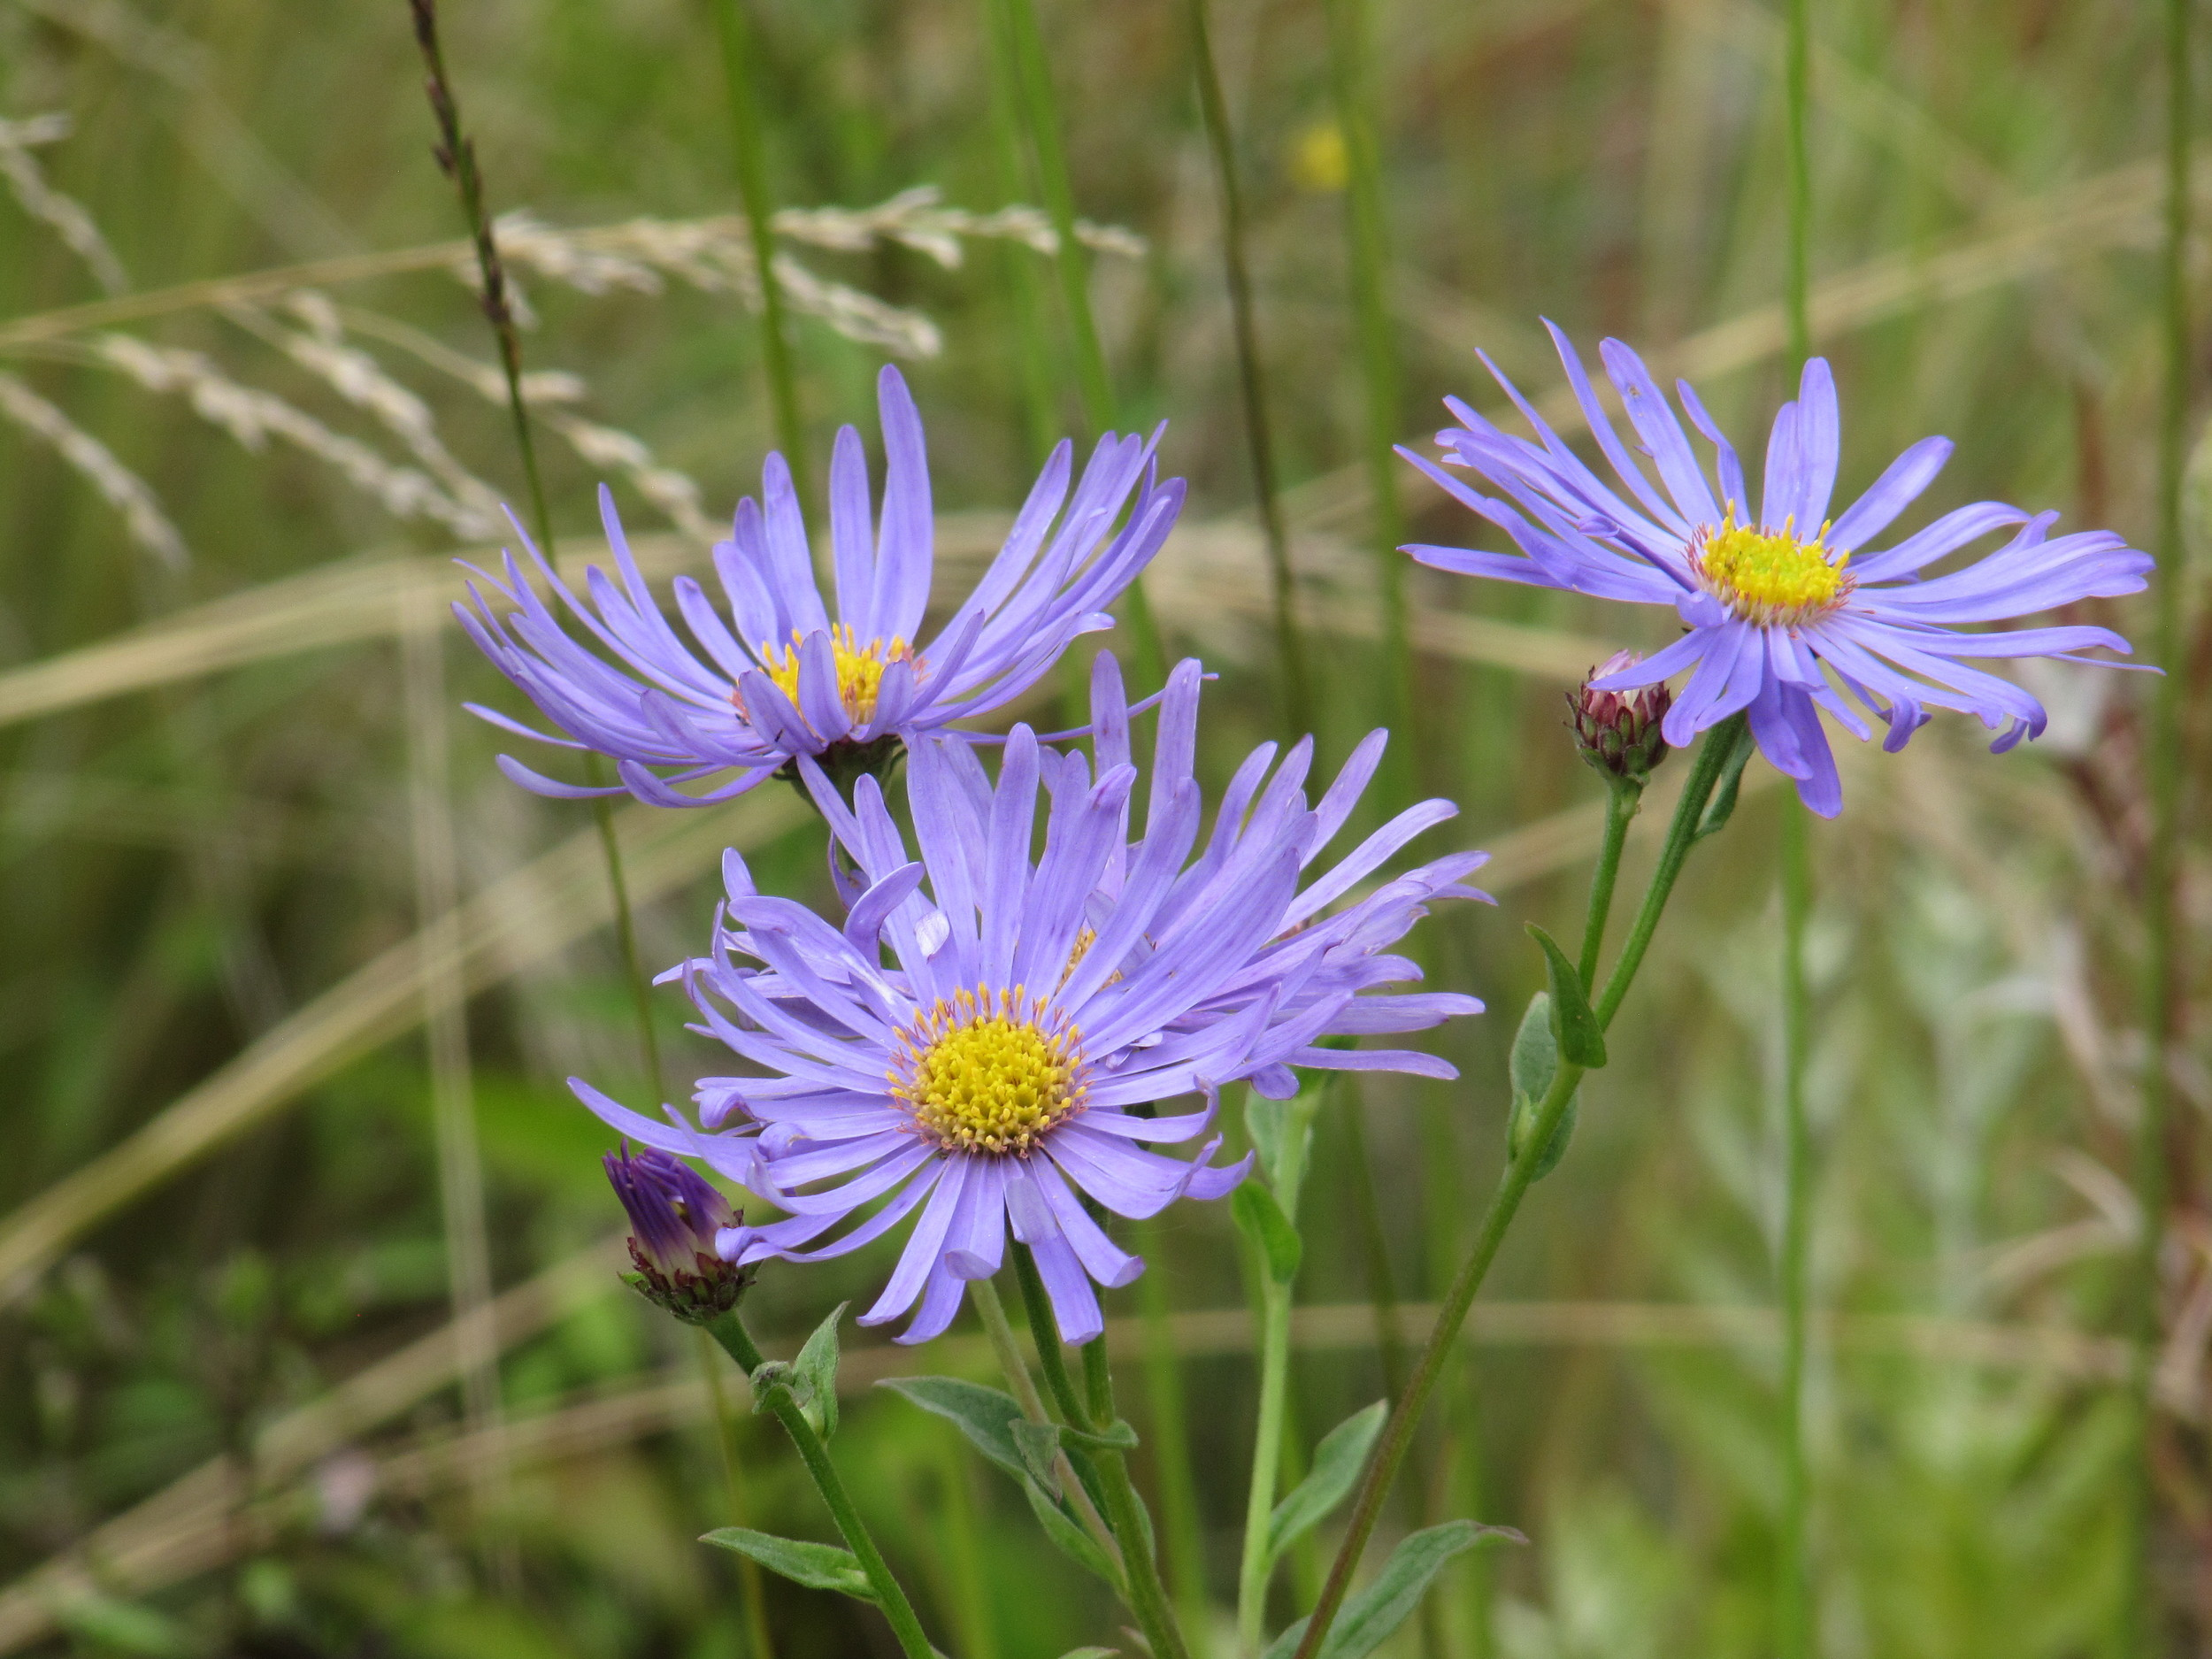 Aster 'Monch' a lovely late flowering perennial.